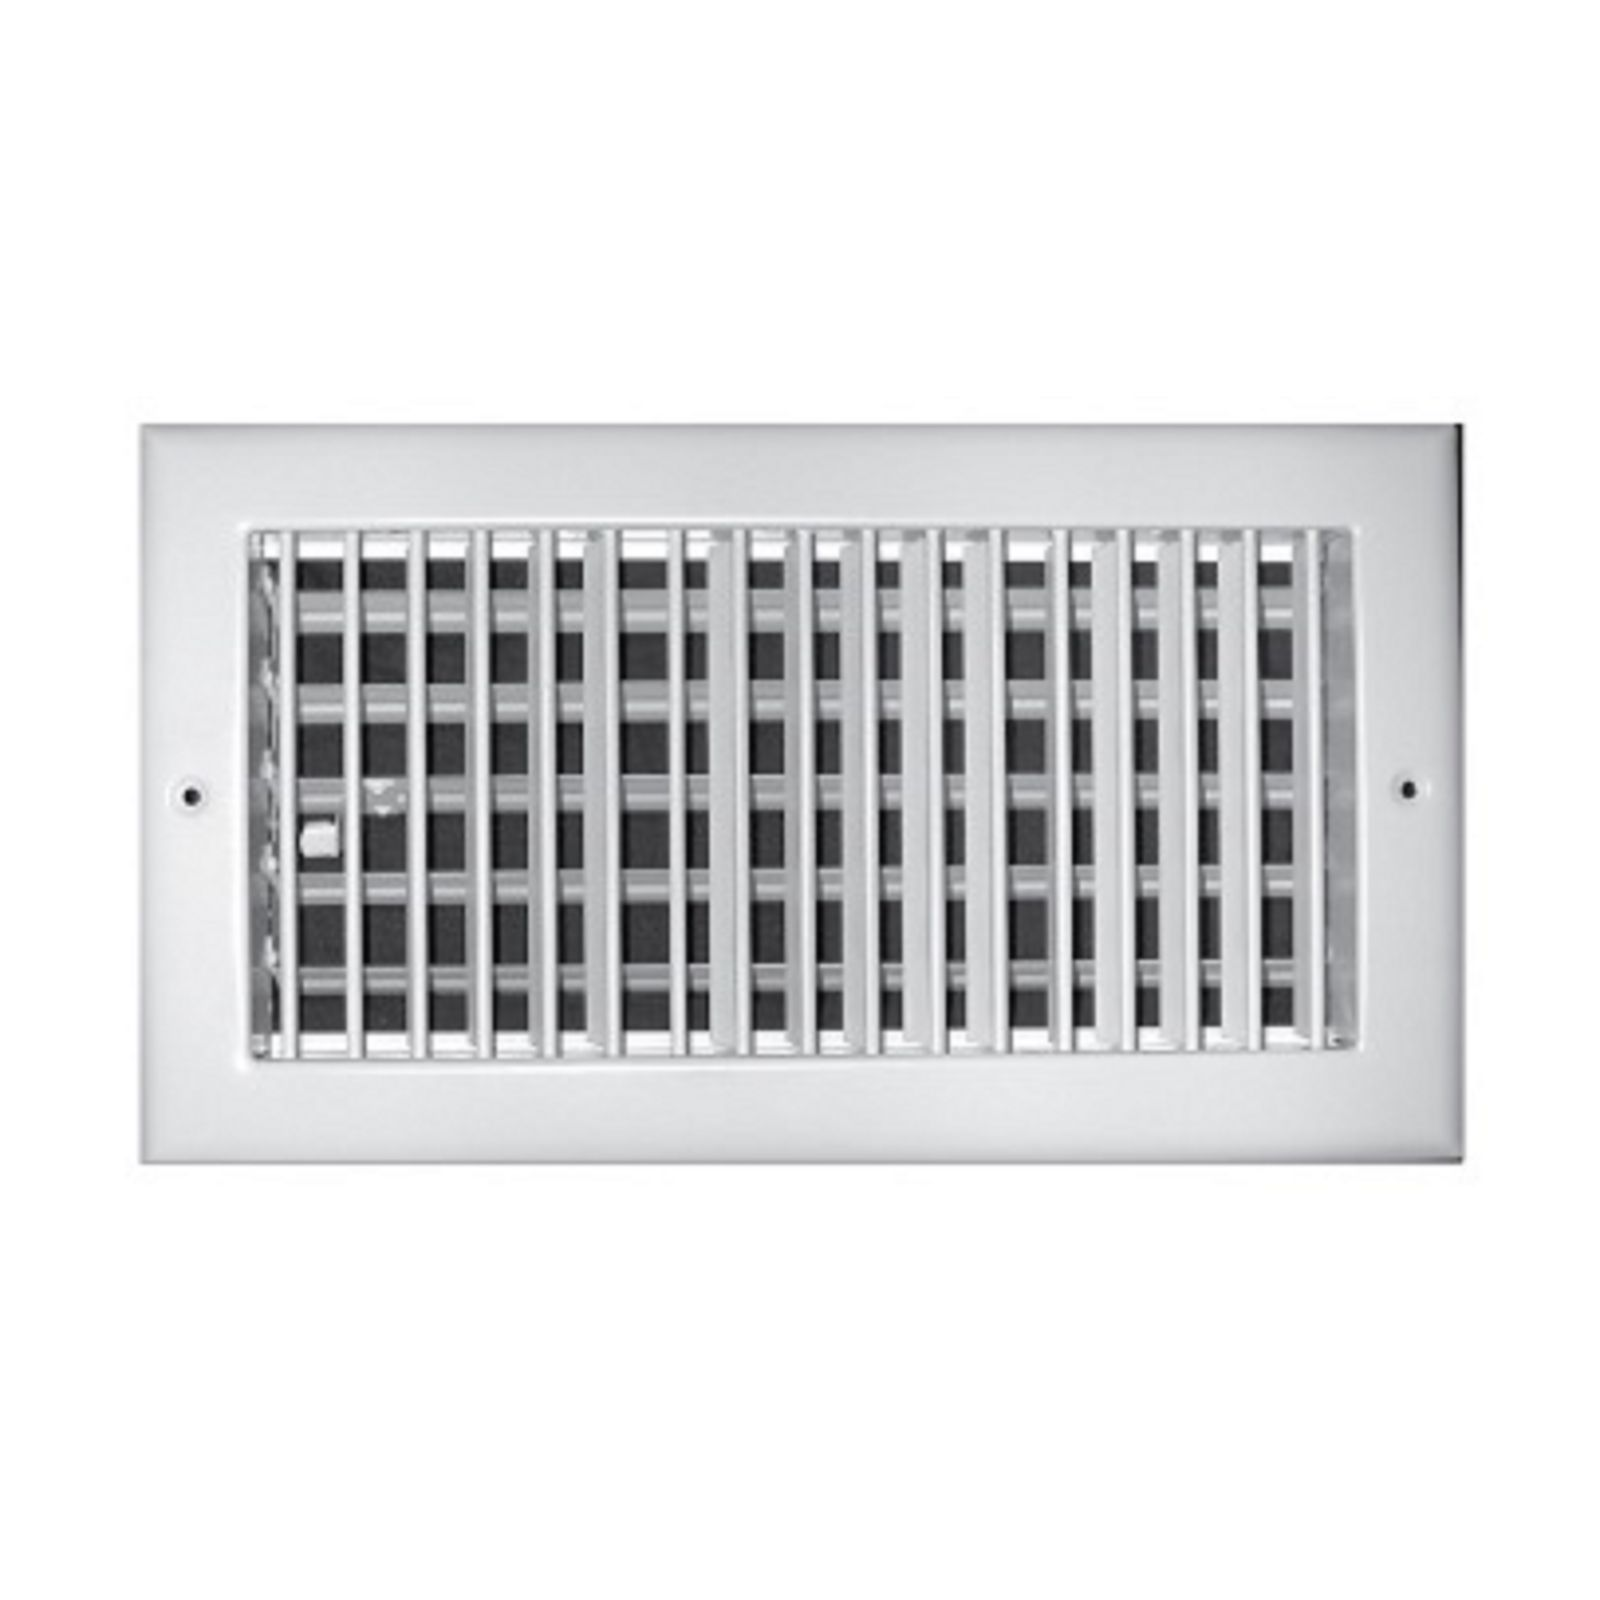 "TRUaire A210VM 10X06 - Aluminum Adjustable 1-Way Wall/Ceiling Register, Vertical, Multi Shutter Damper, White, 10"" X 06"""